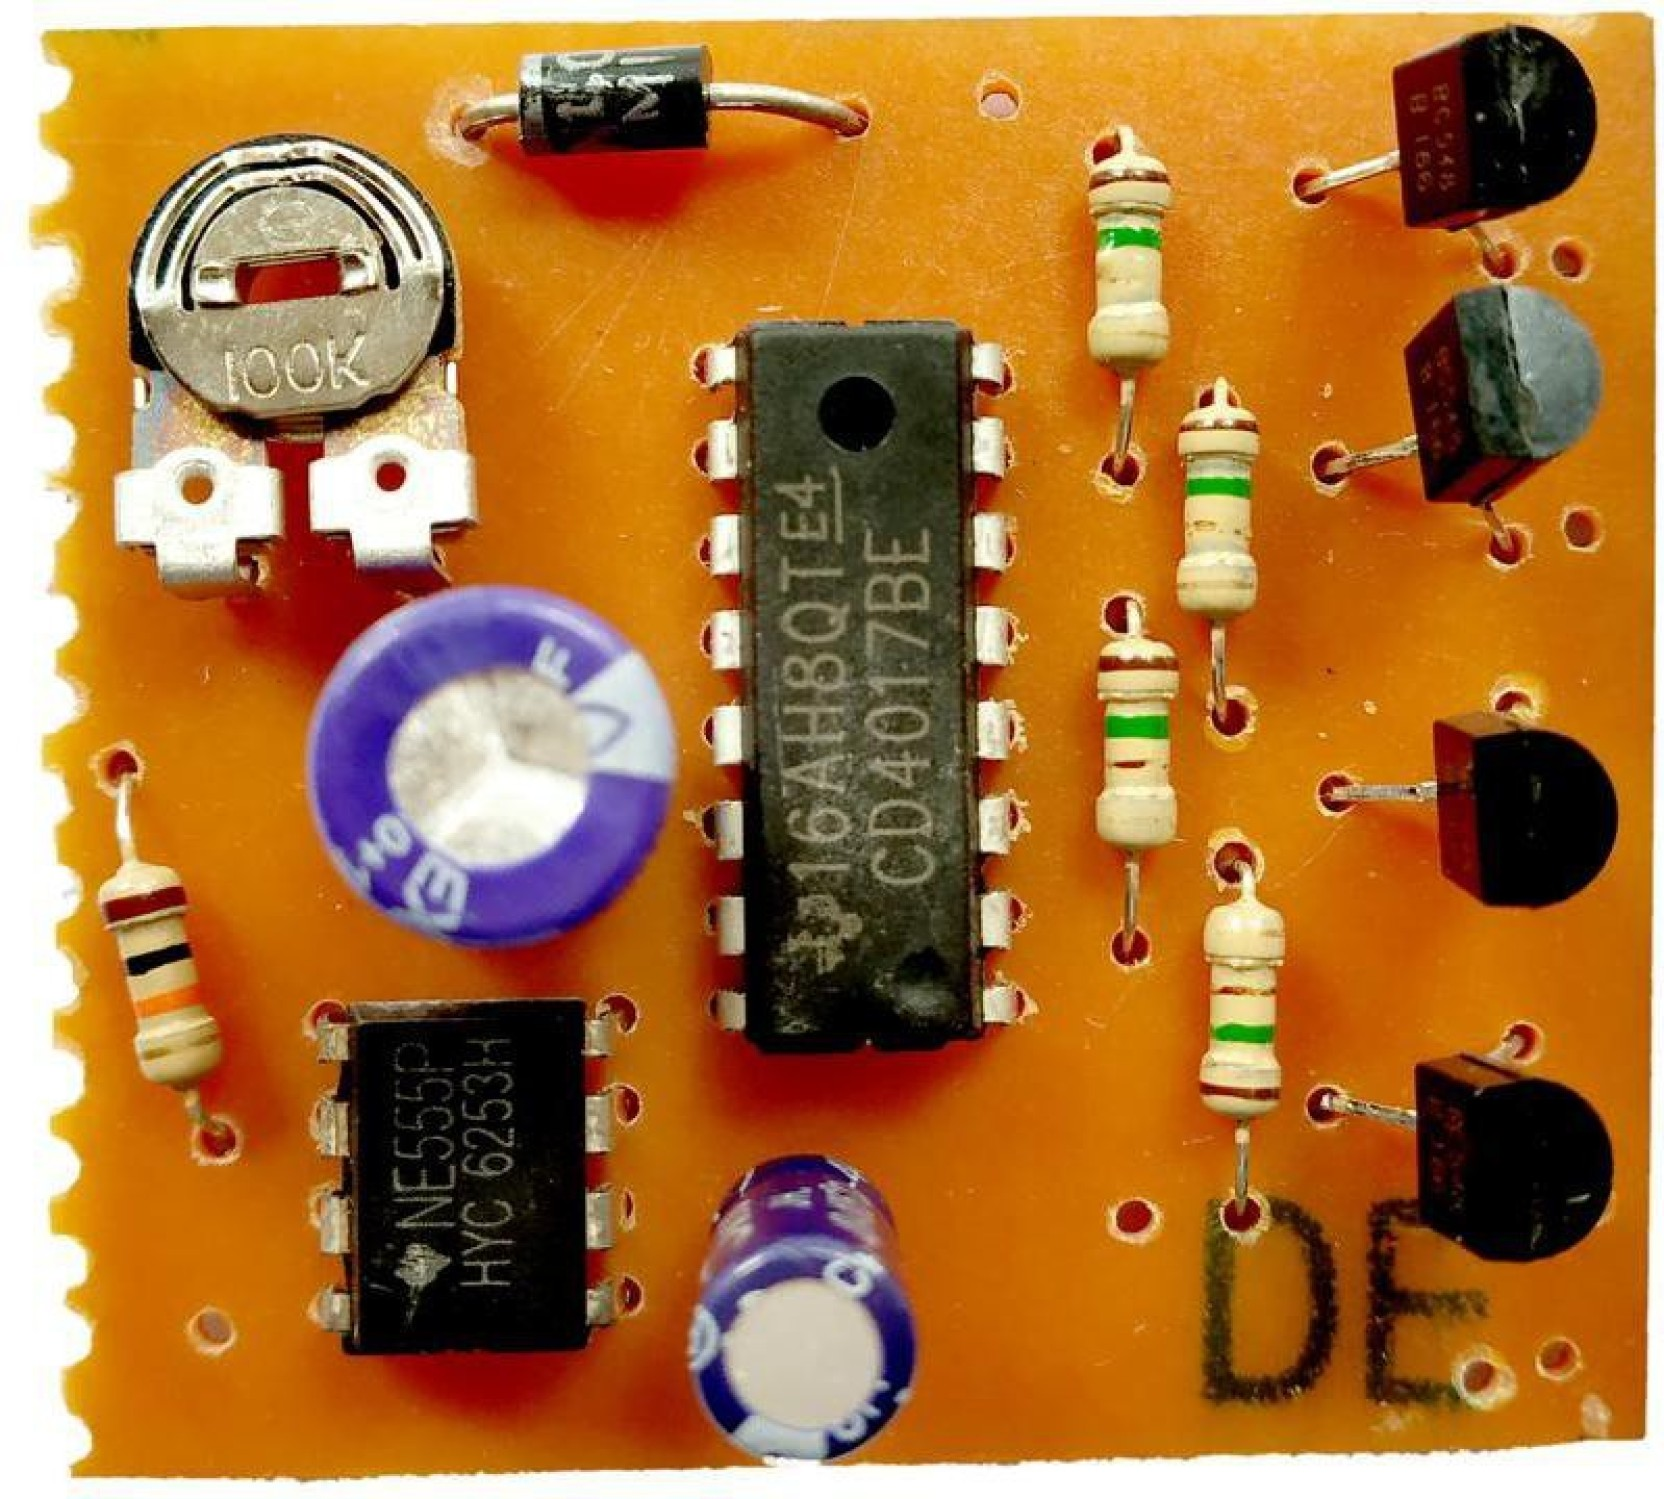 Esp Led Chaser Circuit 4 Outputs 555 Timer Cd4017 Electronic How To Make Mp3 Player At Home Using Components Add Cart